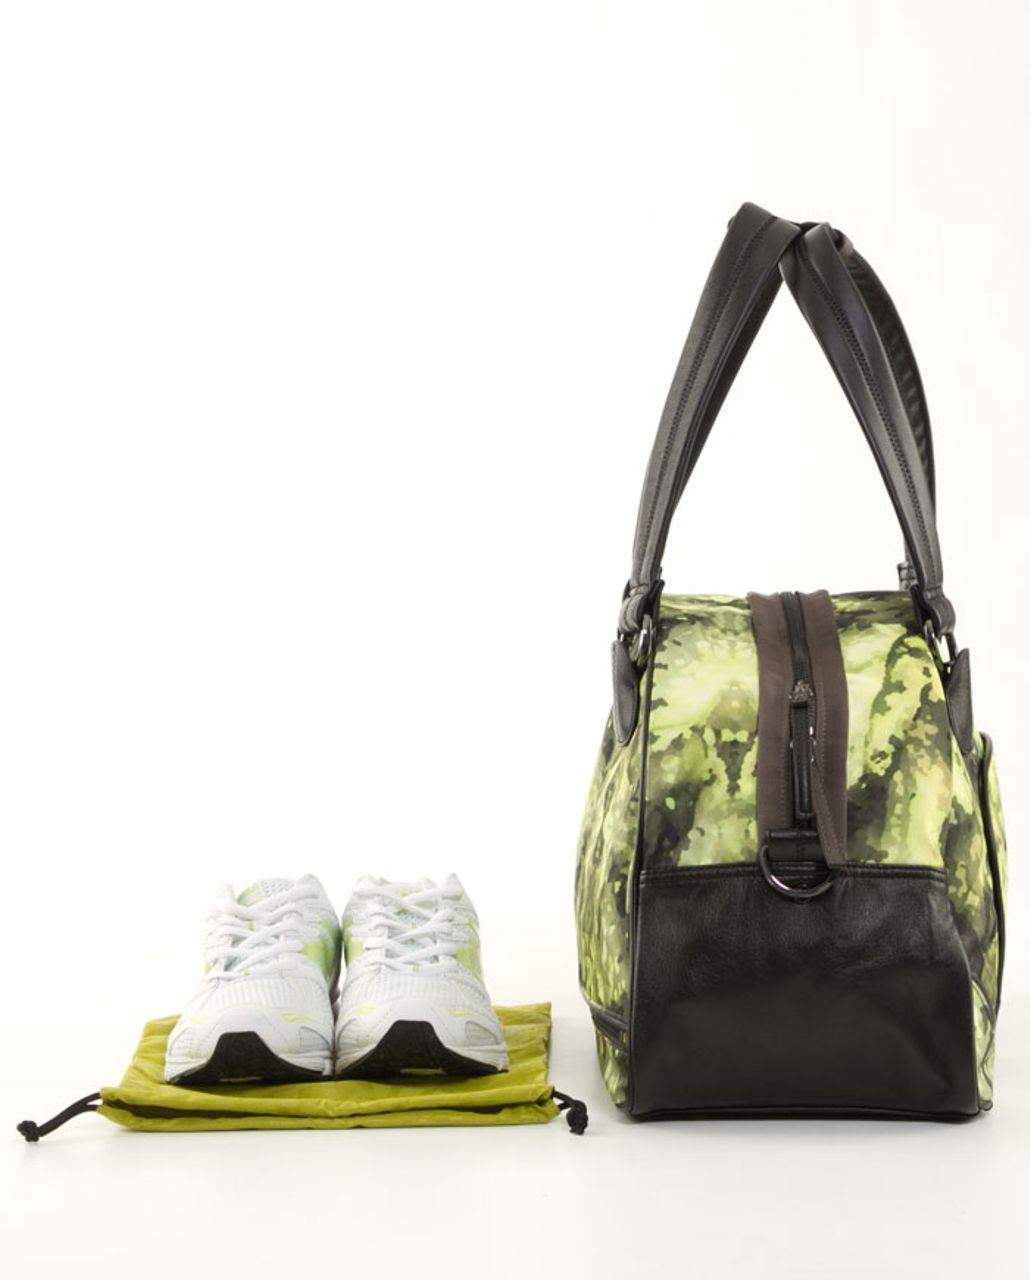 Lululemon Still Groovy Bag - Deep Camo Creekside Camo